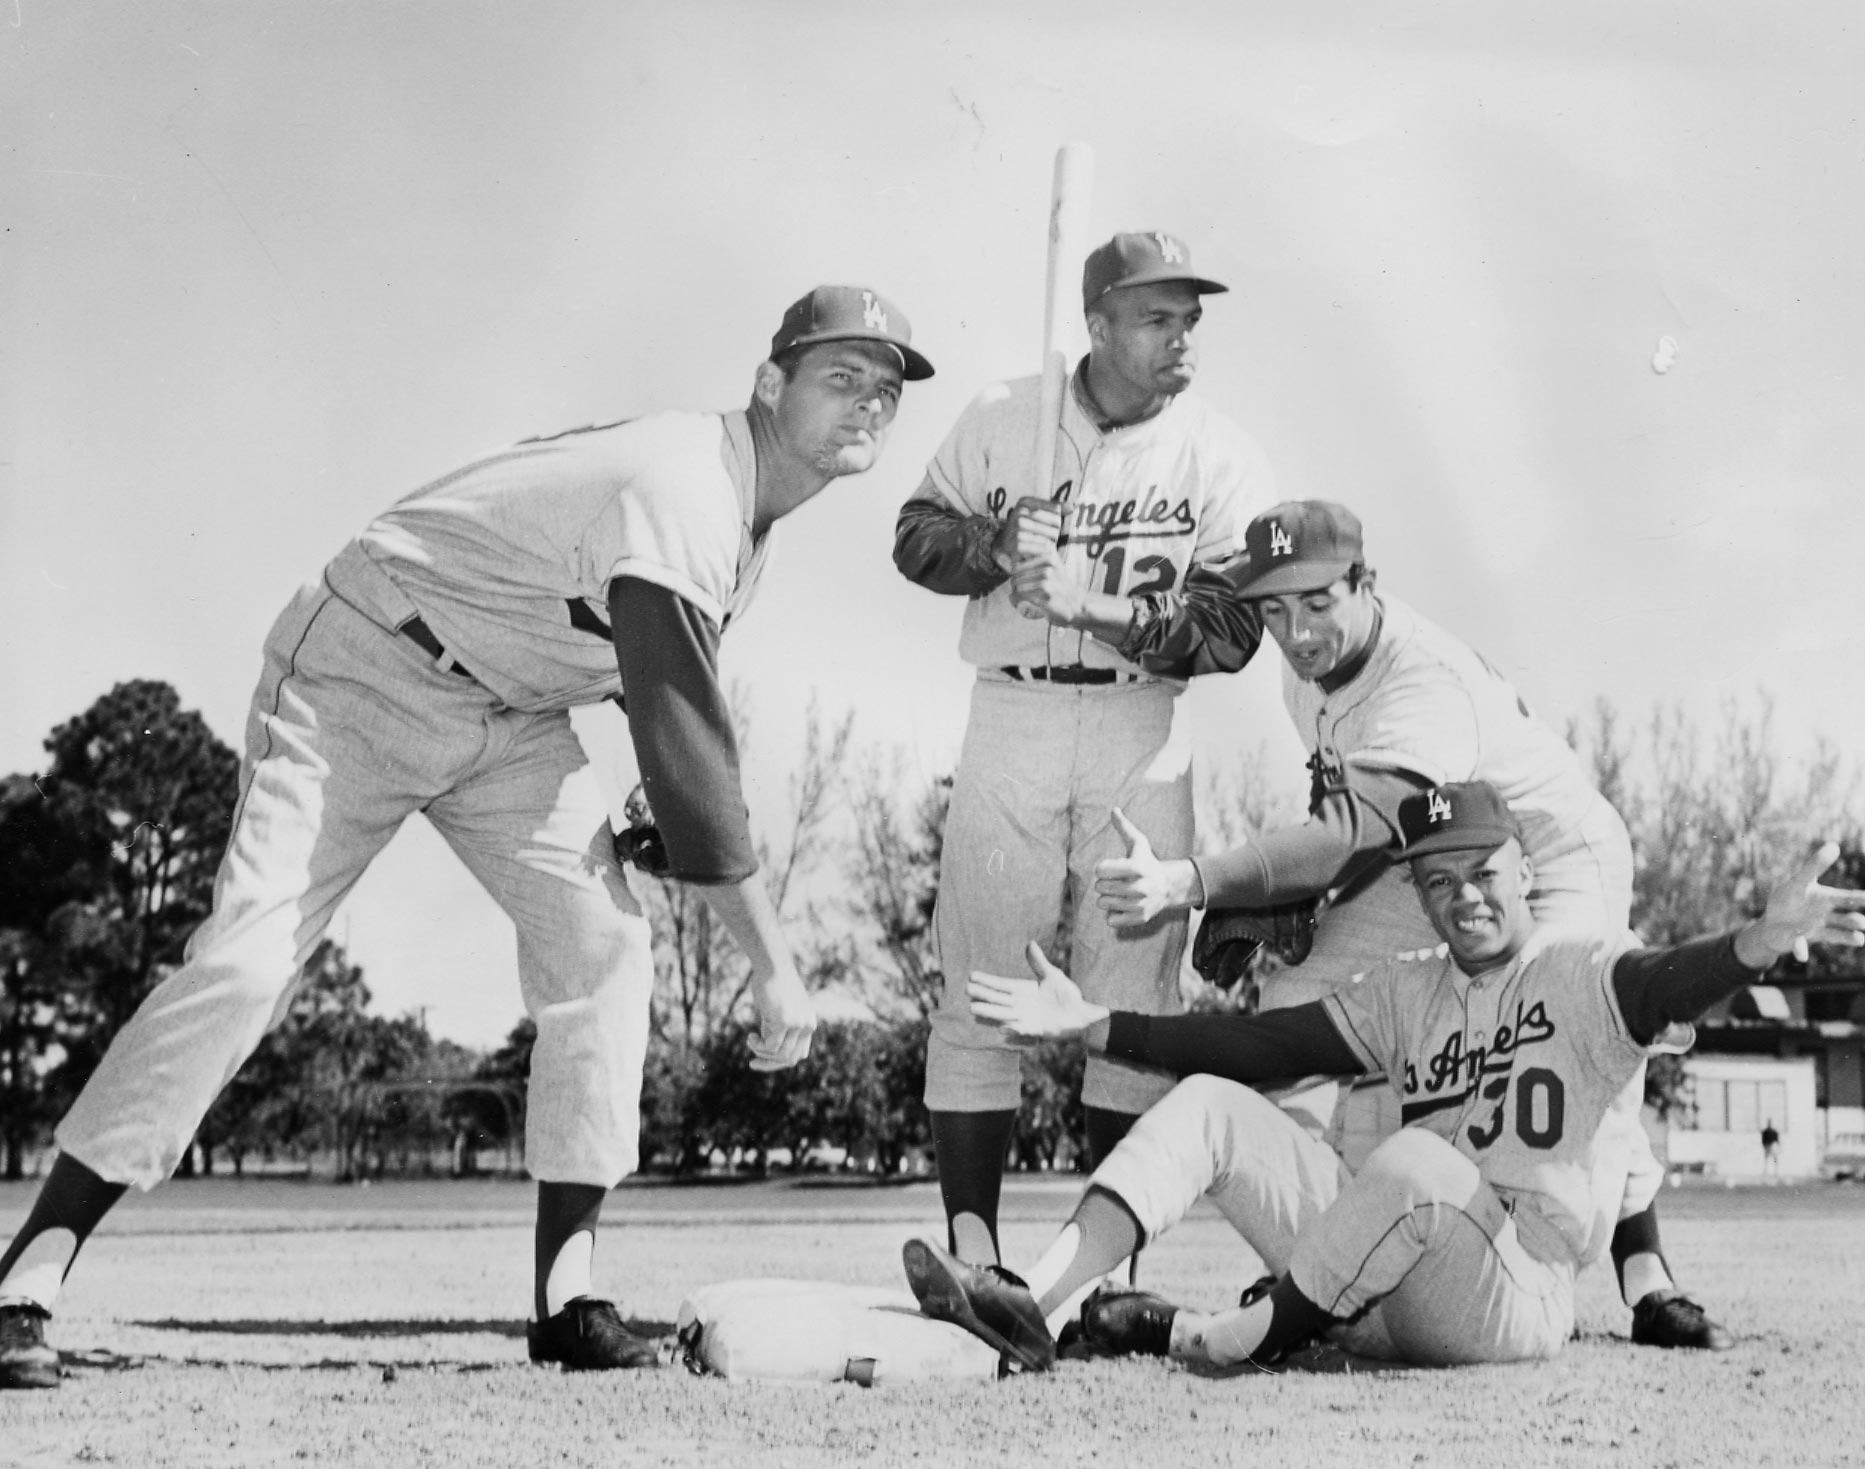 "(L-R) Don Drysdale; Tommy Davis; Sandy Koufax; Maury Wills.  These four Dodgers were performance leaders for the Dodgers' great play from 1959 to 1965 where they won three World Championships in 1959, 1963, and 1965.  In 1962, Drysdale won the Cy Young Award, Tommy Davis was the National League batting champion, and Maury Wills won the 1962 National League Most Valuable Player Award.  In 1963, these four players were part of the 1963 World Champion Dodger team that swept the New York Yankees in four games.  In 2005, Tommy Davis stated in an autobiographical book, ""Tales from the Dodger Dugout,"" that he signed a professional contract with the Dodgers because Jackie Robinson called Davis and gave him his strongest recommendation the Dodgers would the best team for Davis to play."